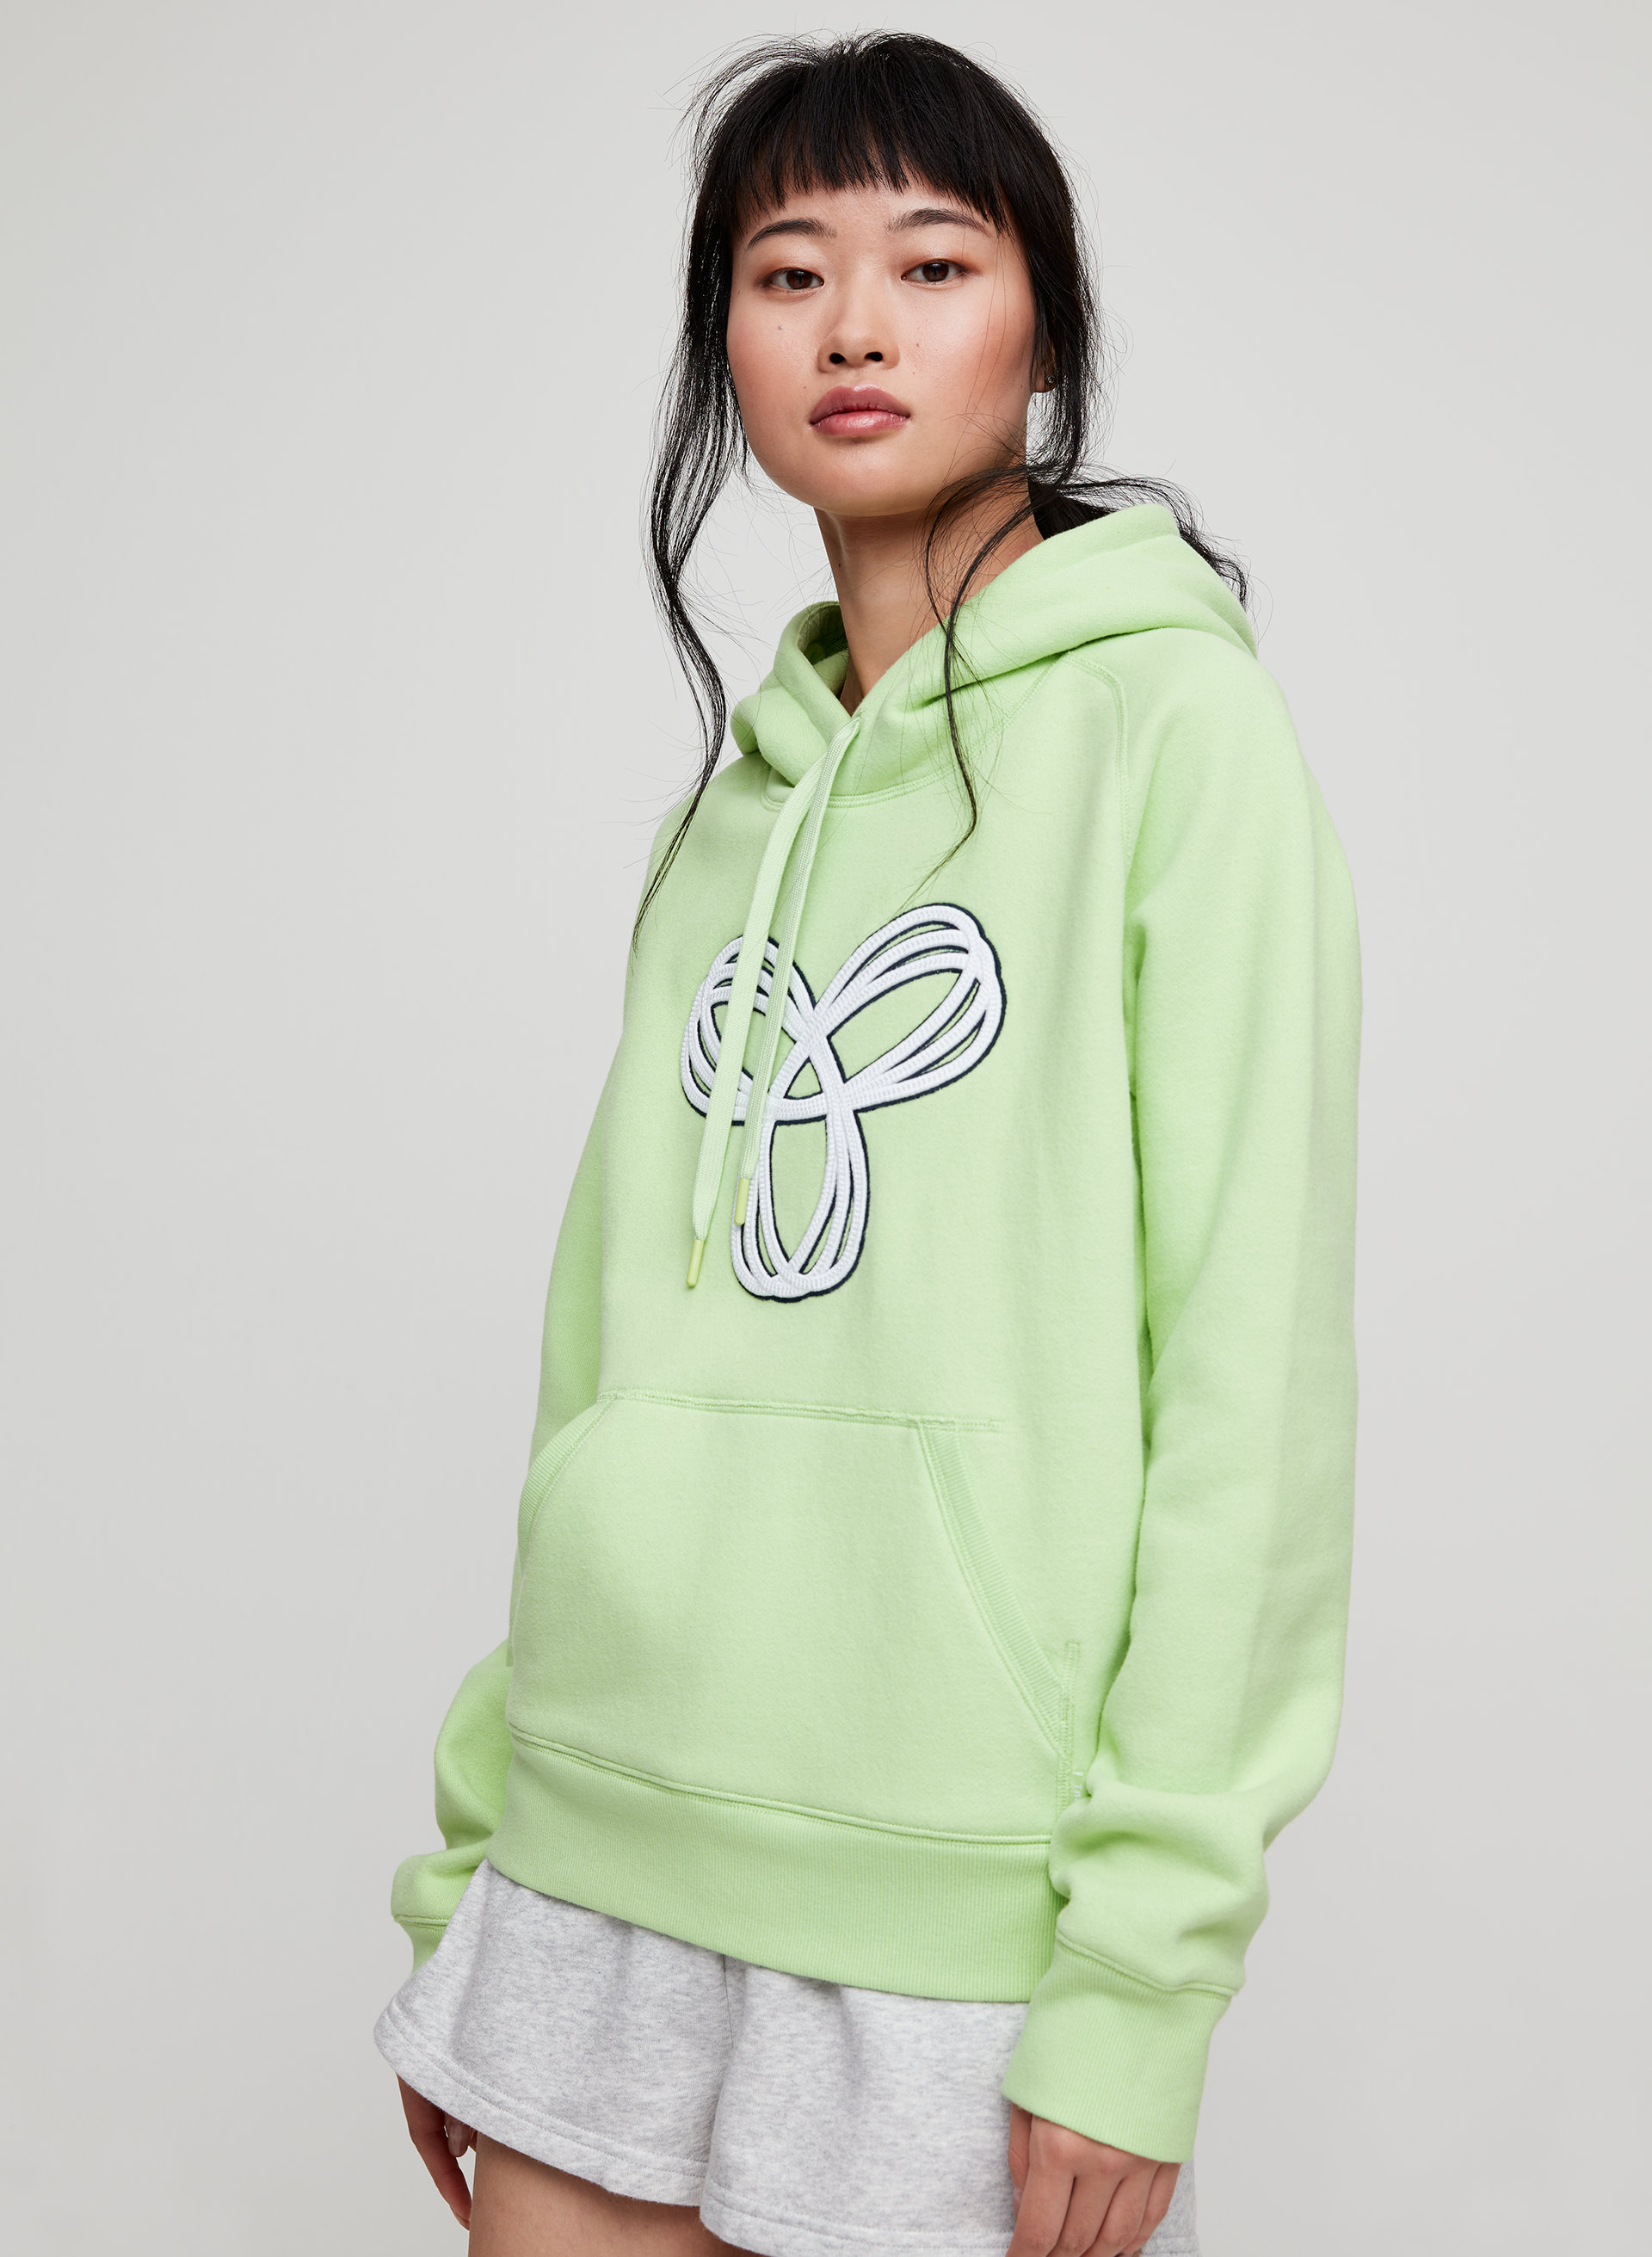 02a24c2329d baltic hoodie Embroidered